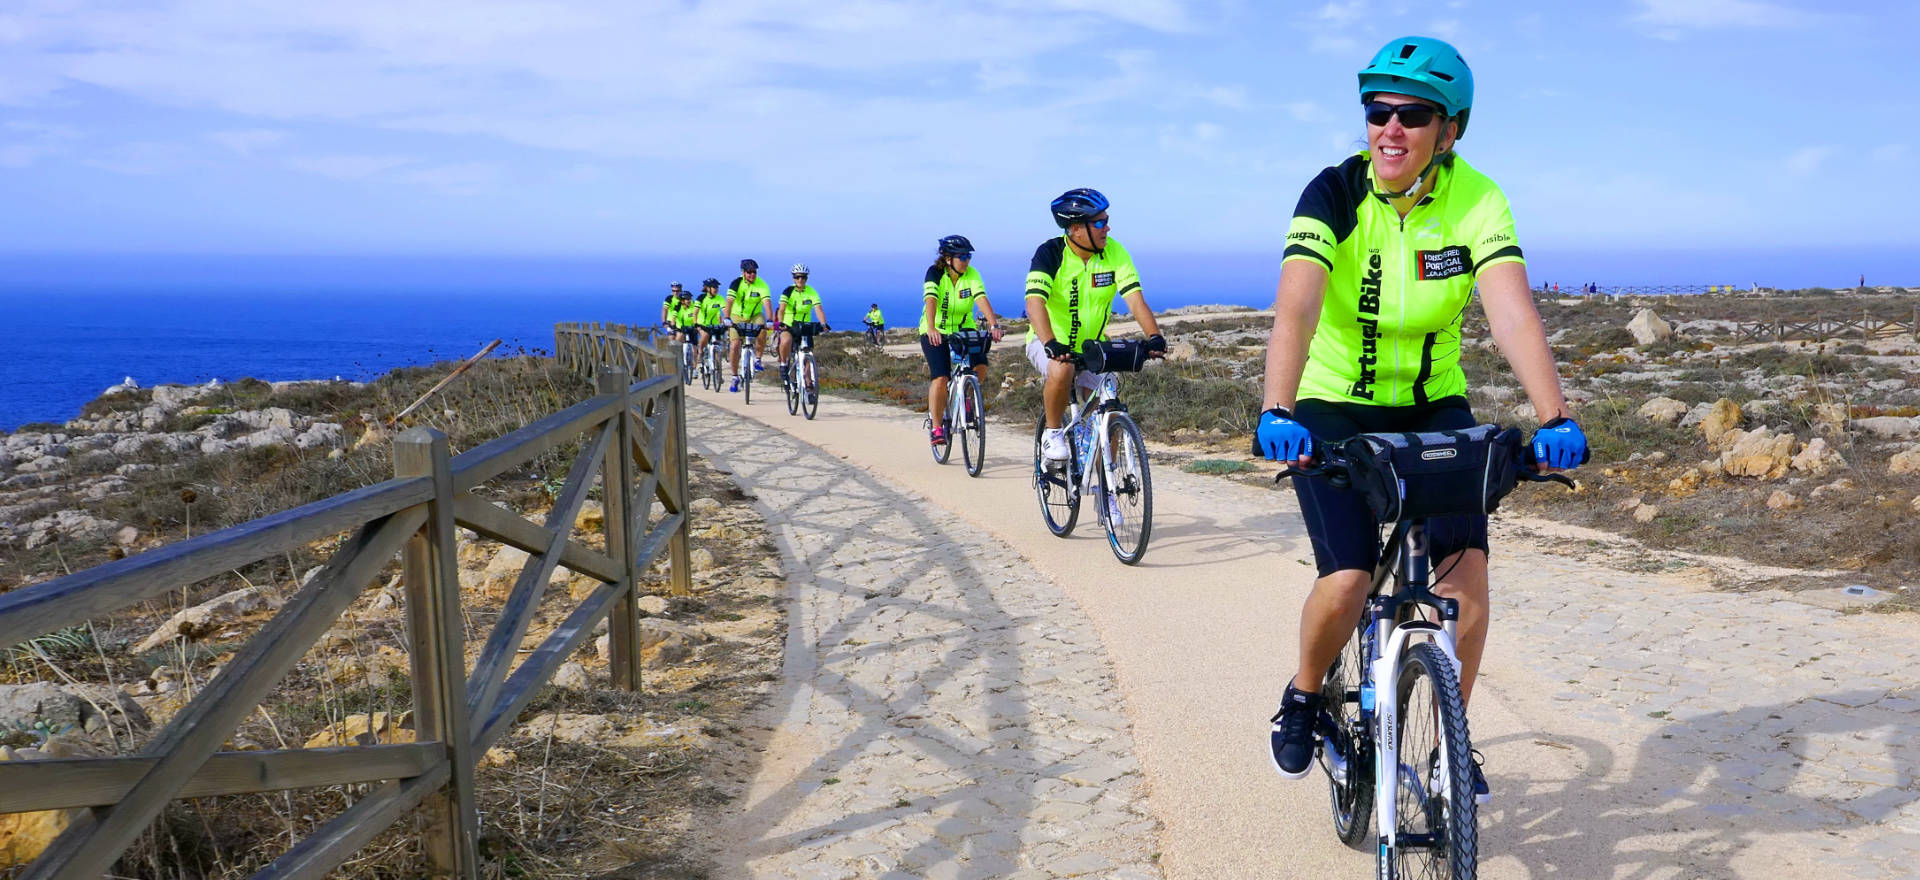 Cycling vacation in Europe - Portugal Coast Bike Tour